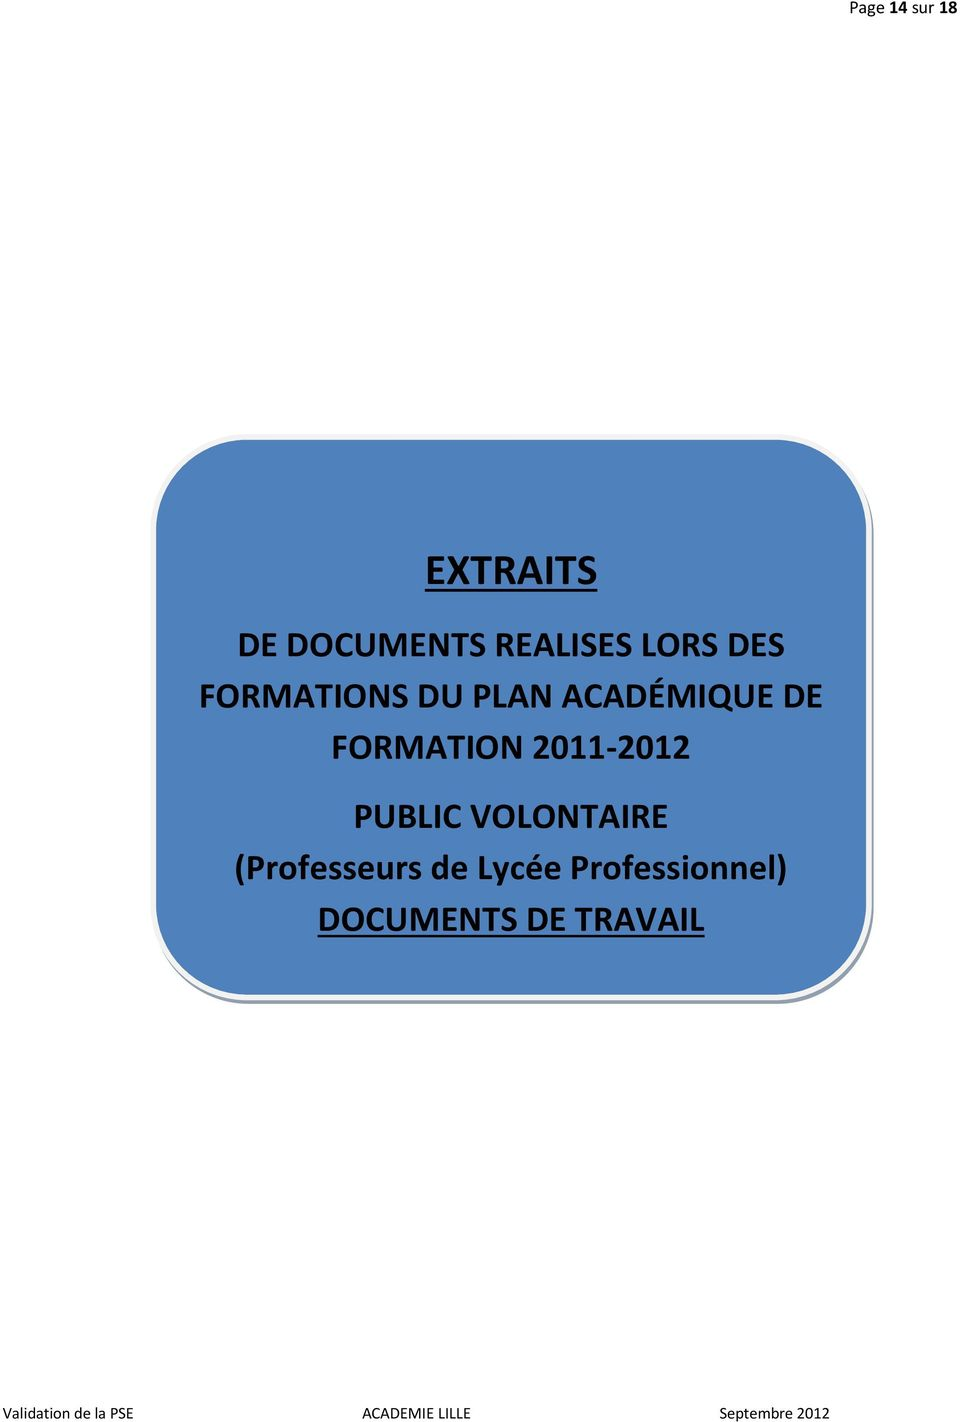 FORMATION 2011-2012 PUBLIC VOLONTAIRE